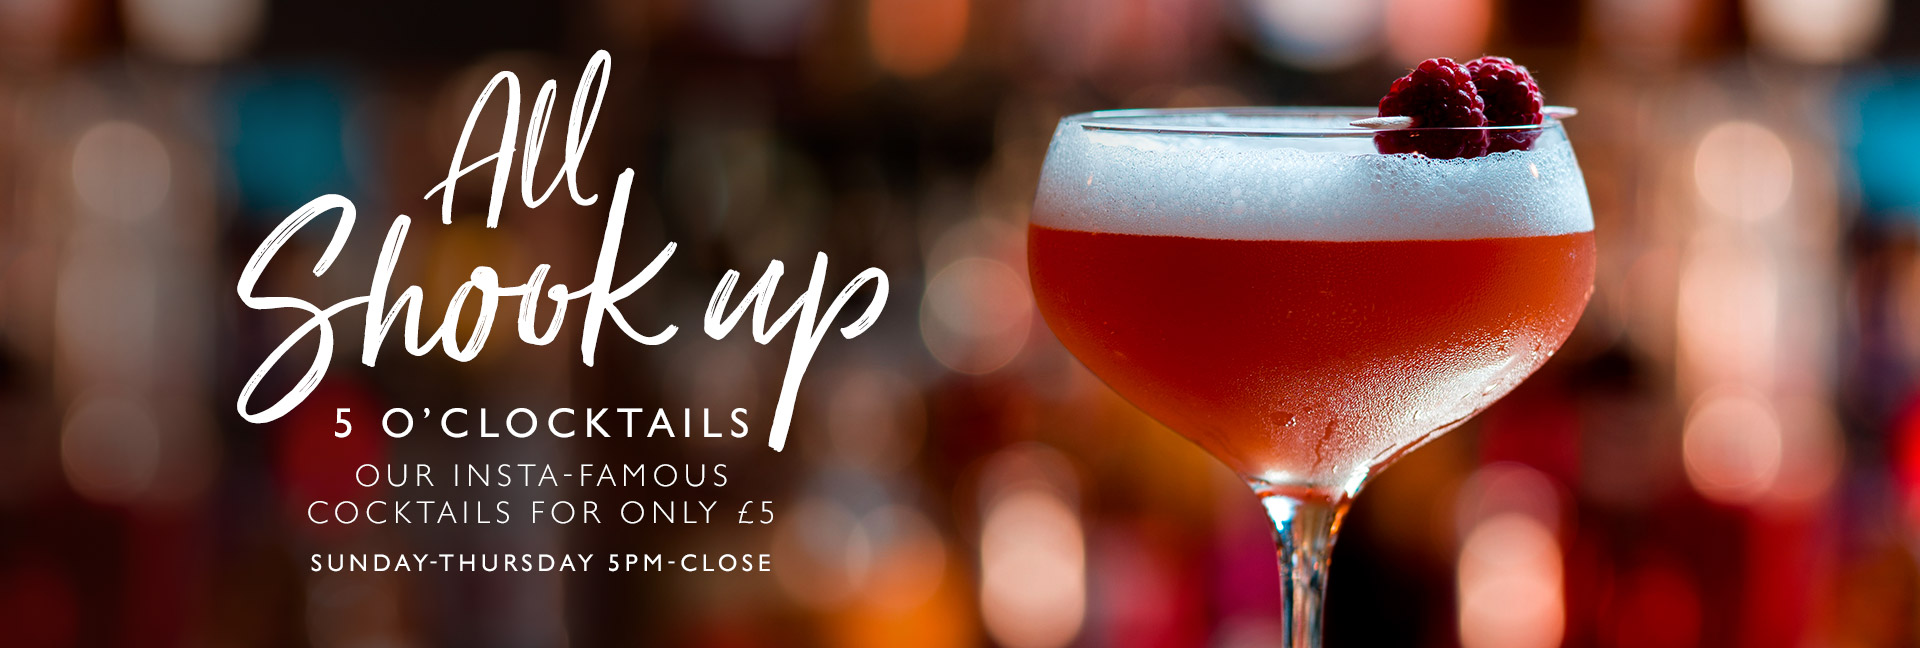 5 O'clocktails at All Bar One Guildford - Book now